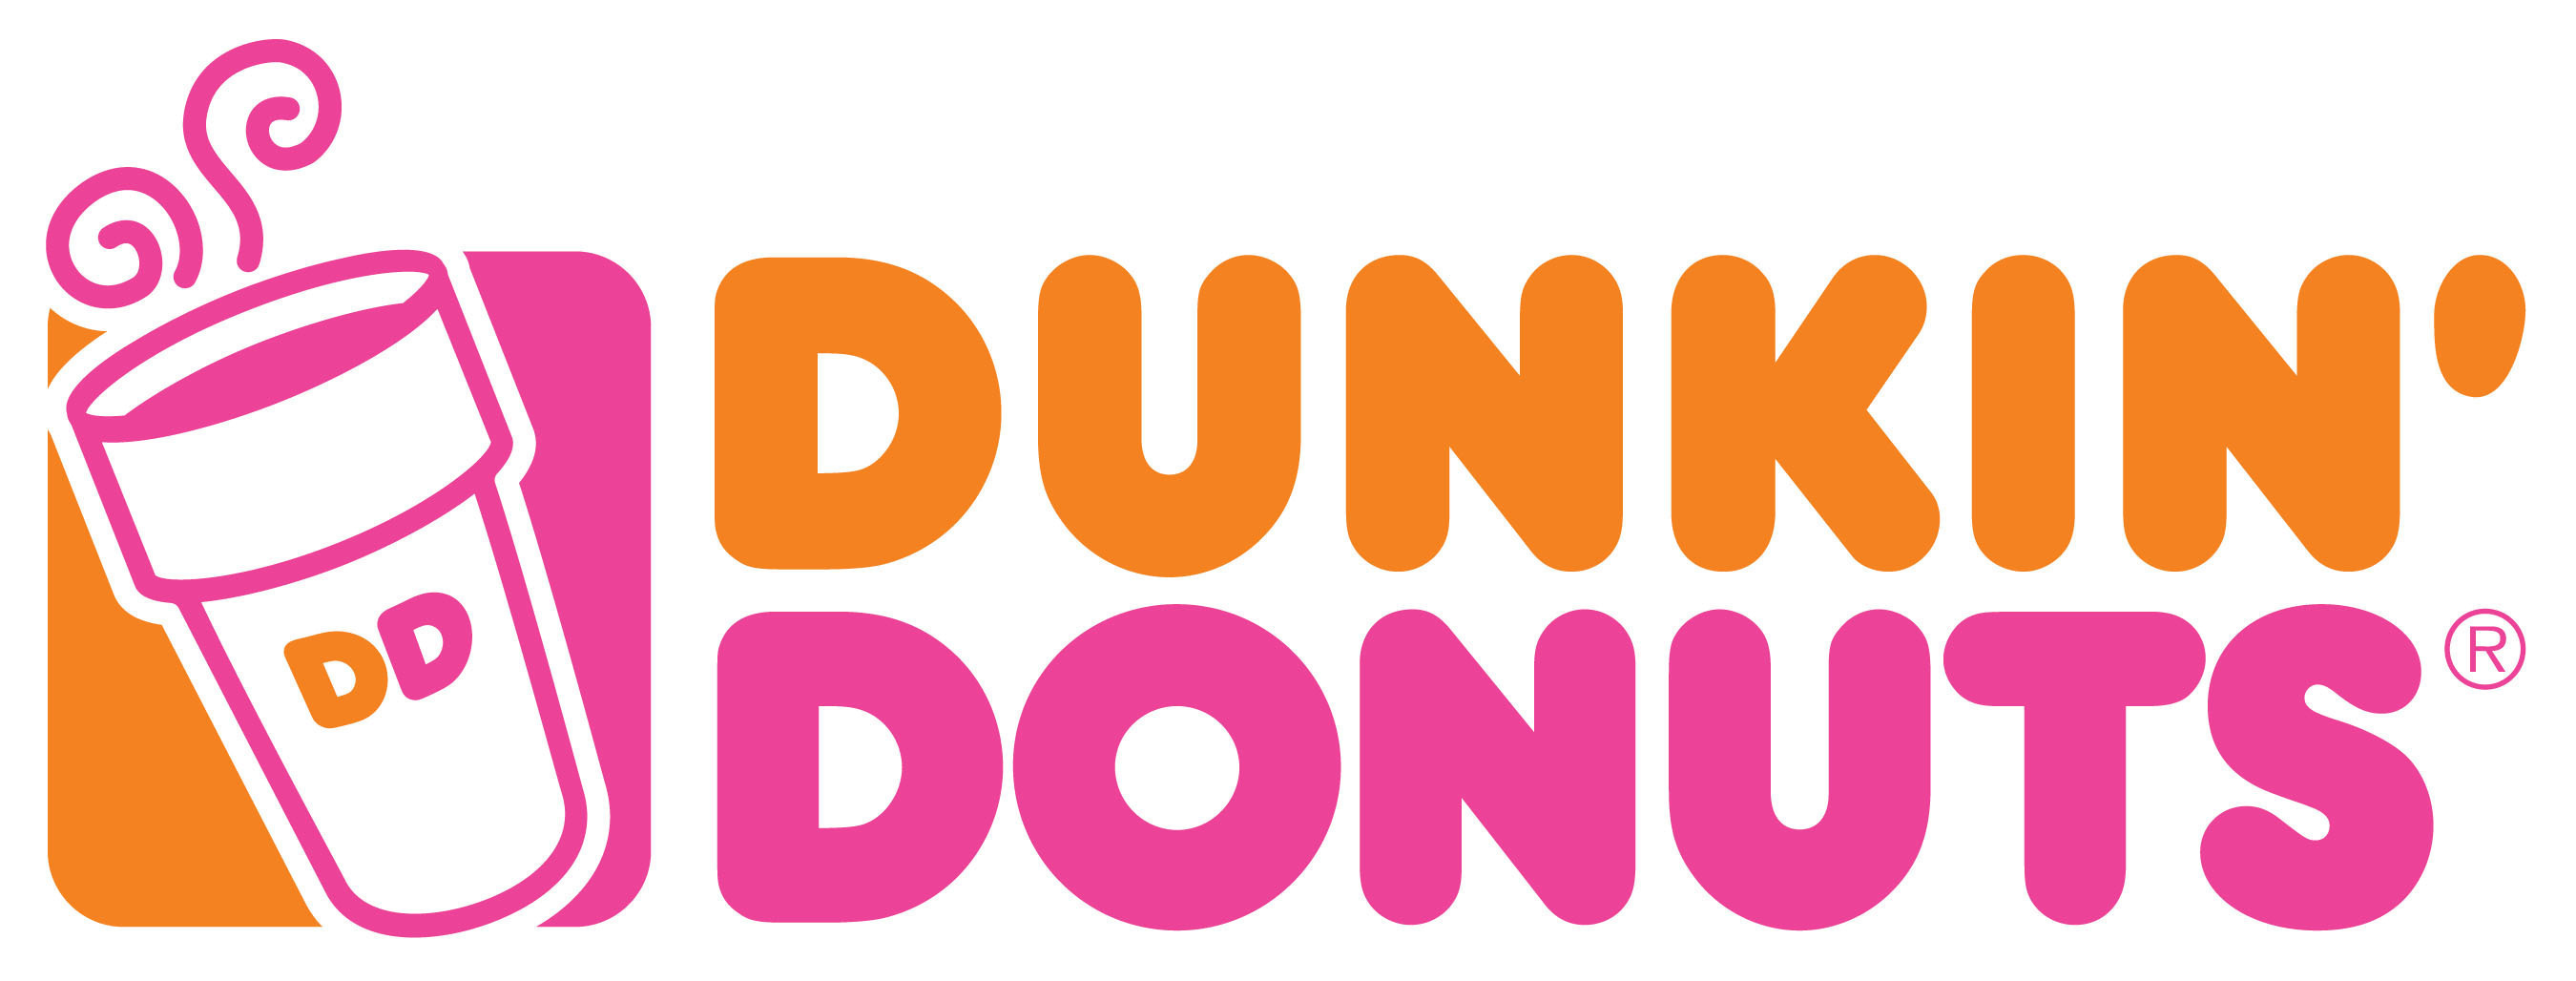 Dunkin Donuts Announces Plans For 10 New Restaurants In